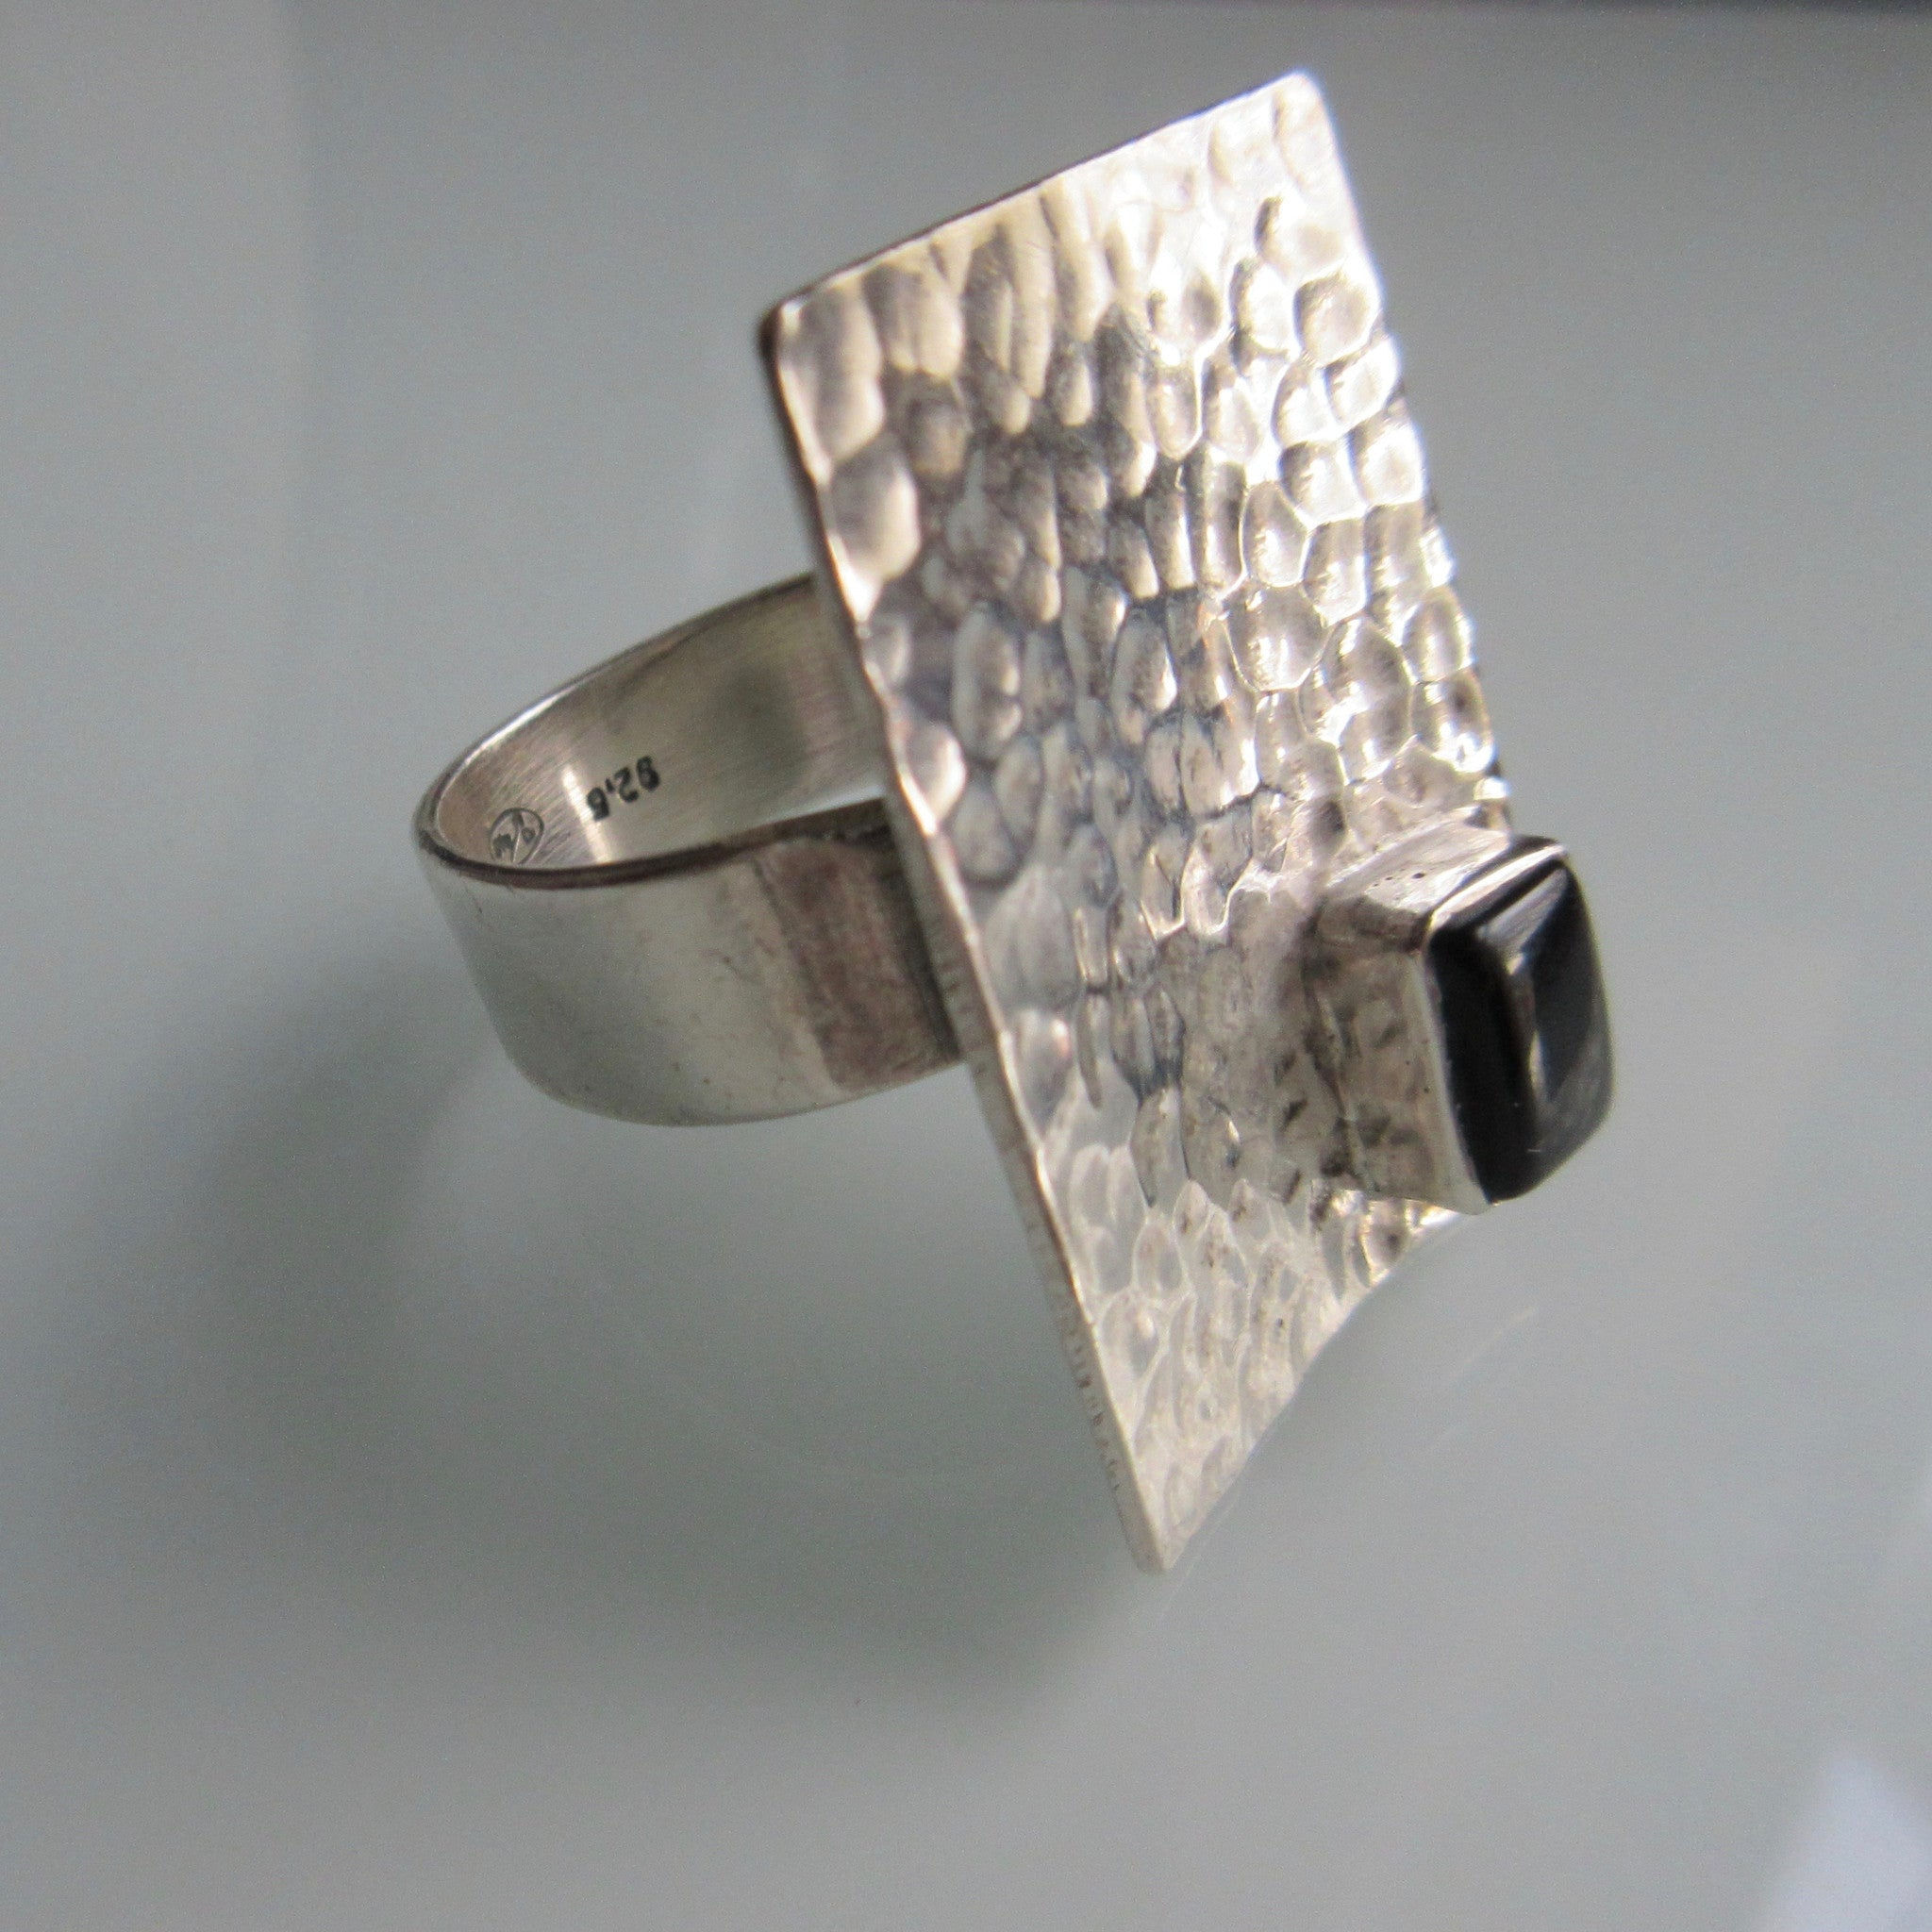 Modern Hammered Silver Ring with Onyz inset